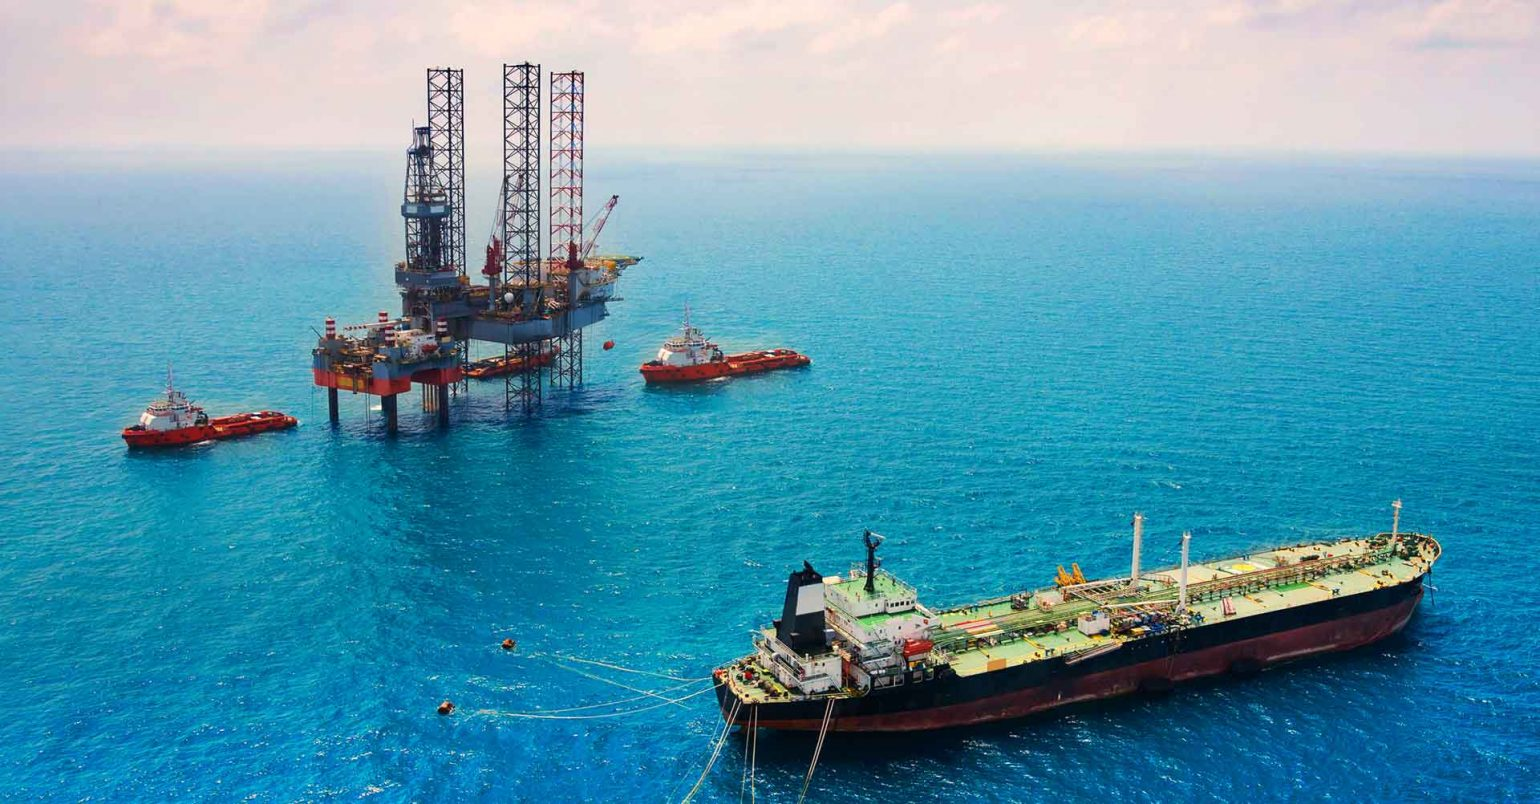 Photo of an oil tanker and oil rig at sea.